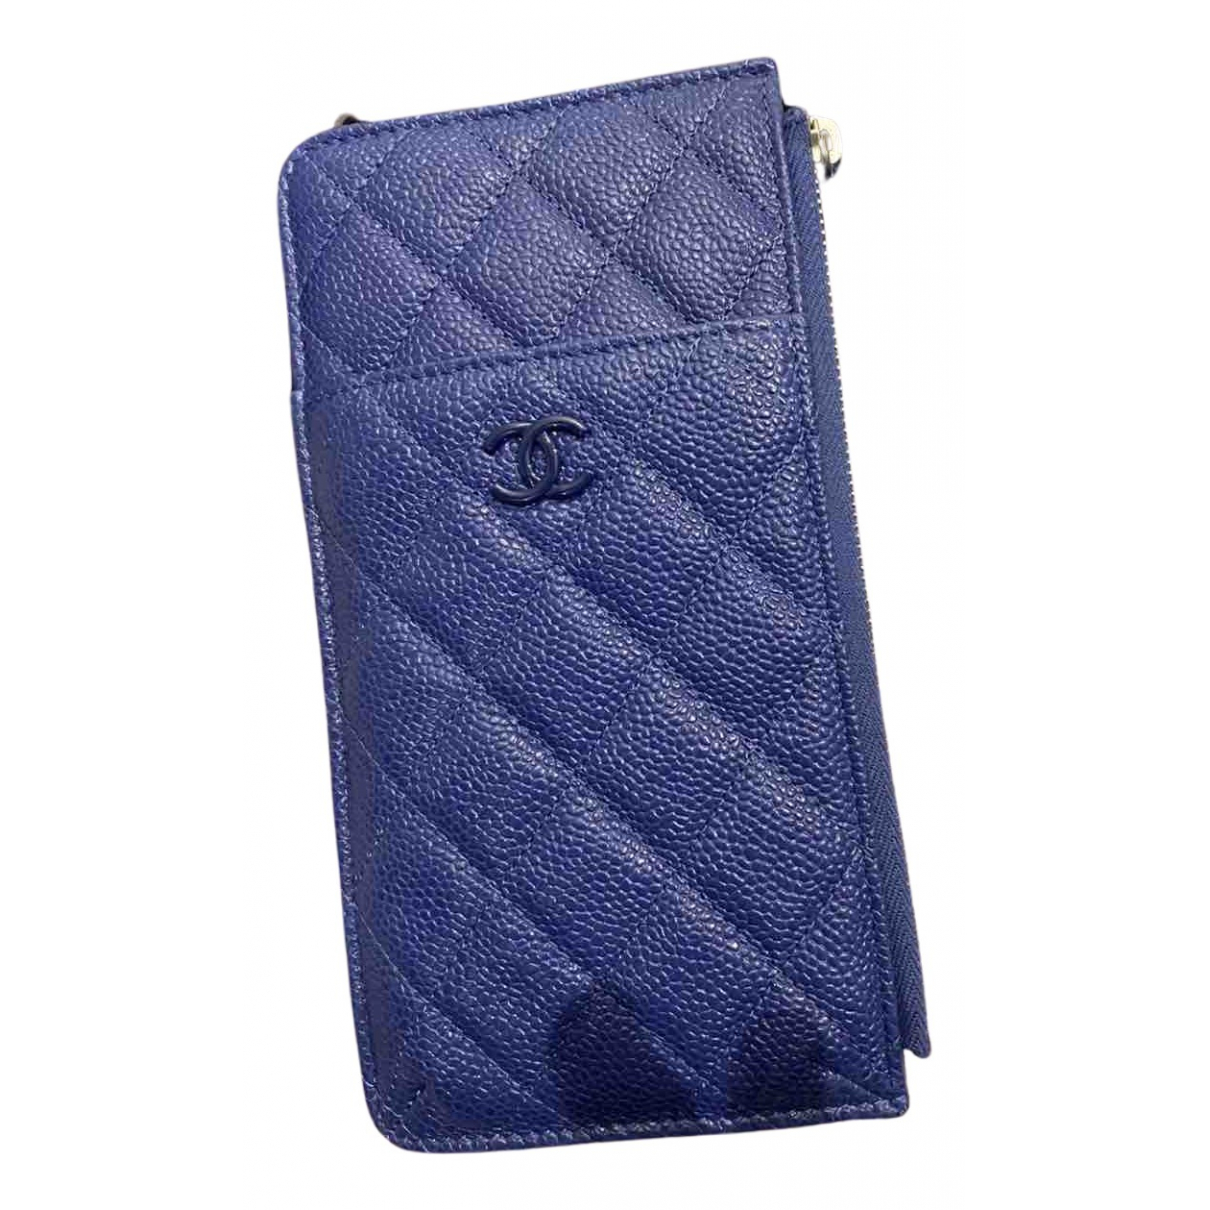 Chanel Timeless/Classique Kleinlederwaren in  Blau Leder